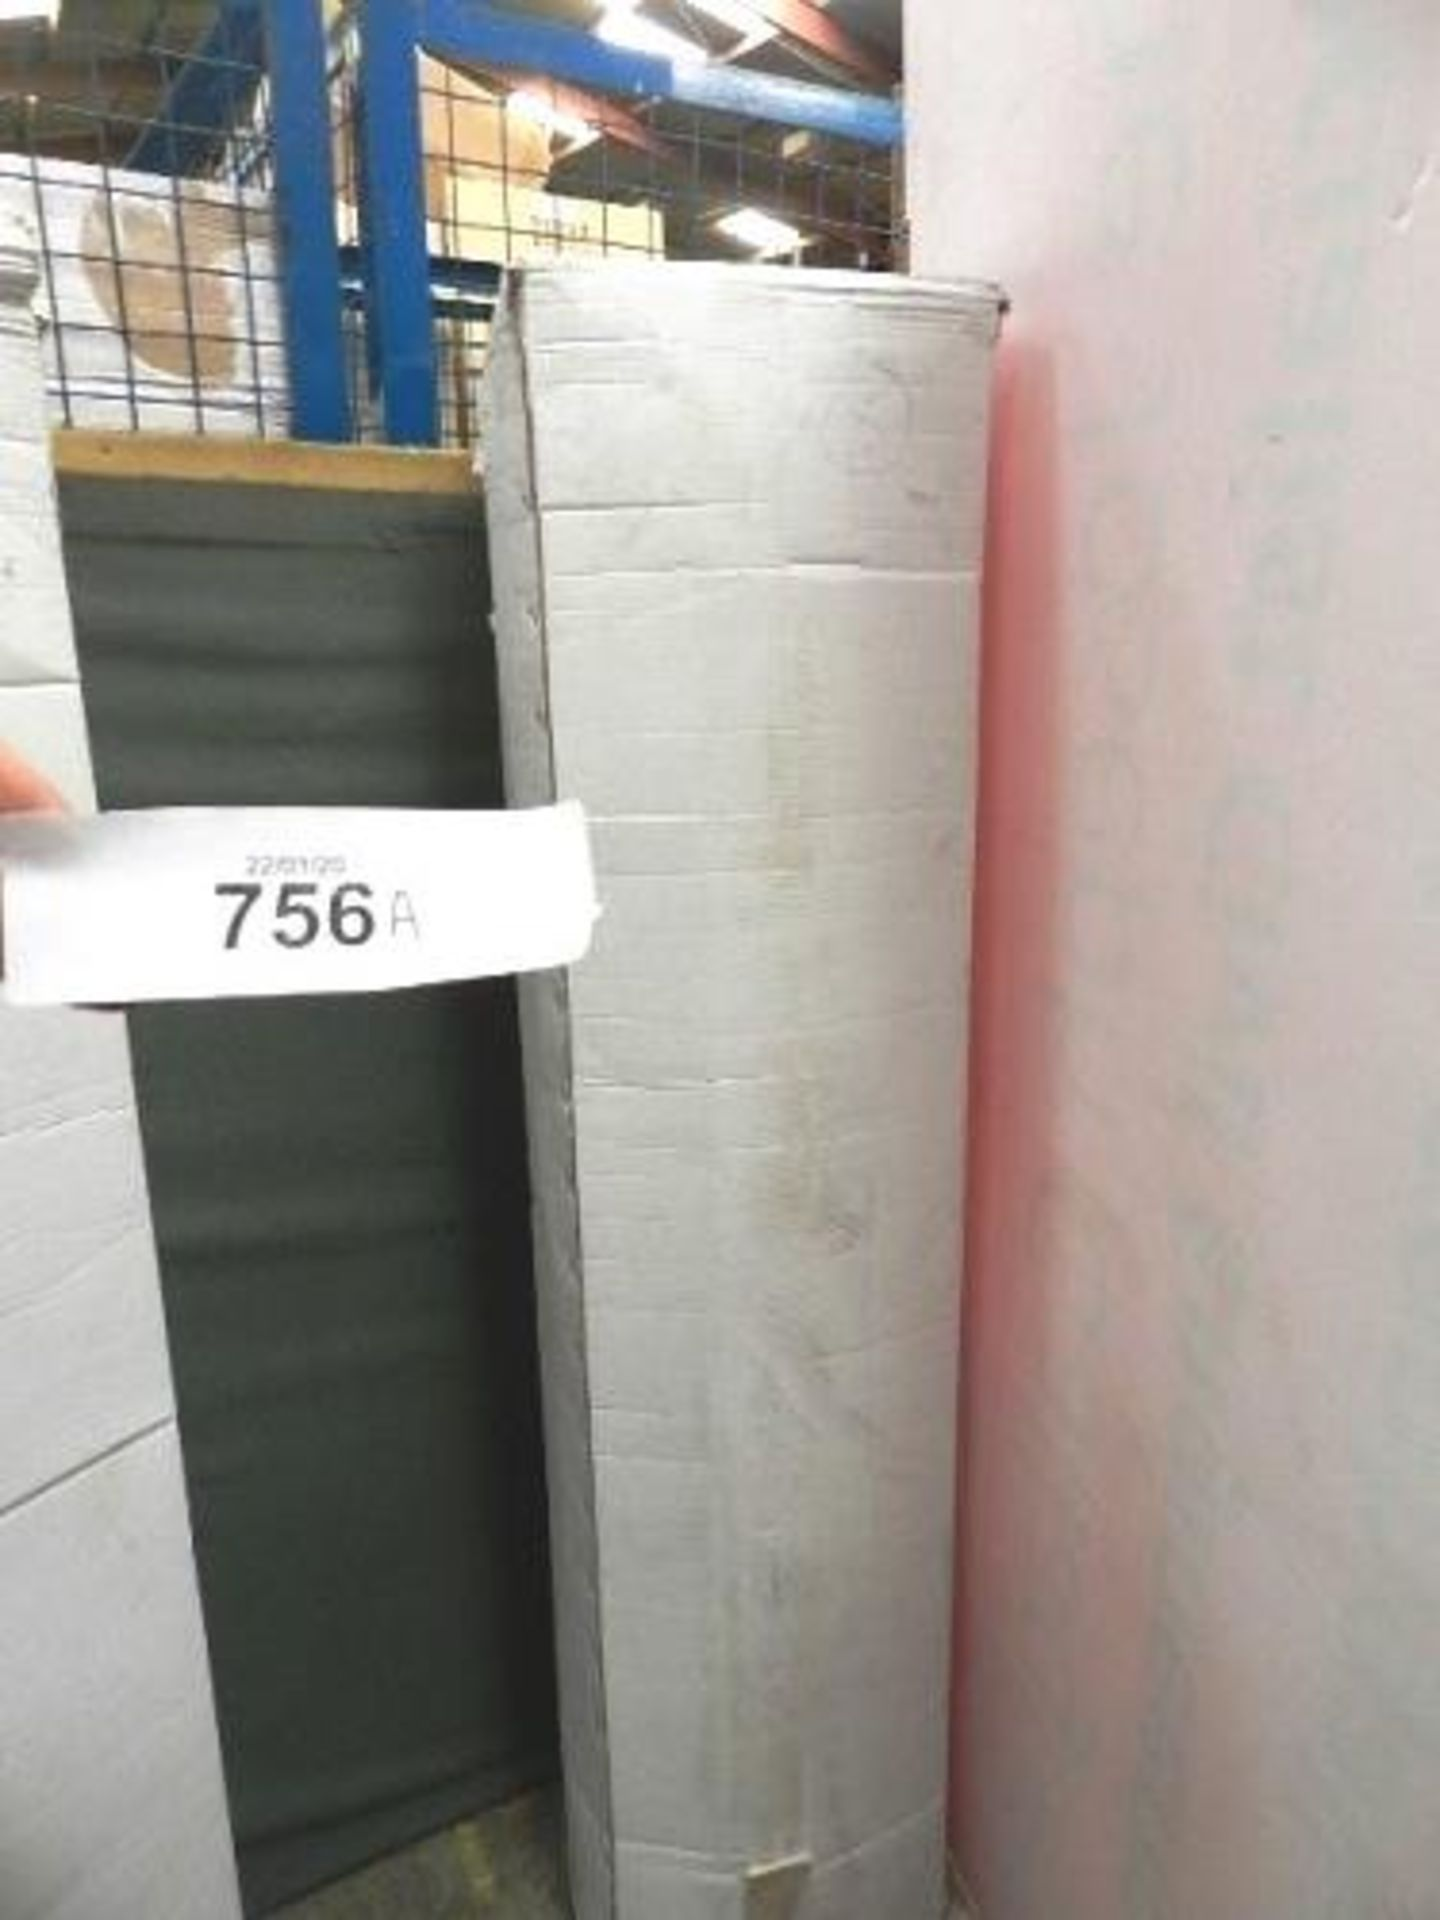 Lot 756 - 1 x sprung double mattress, approximately 5ft wide - Sealed new in box (GSF31)